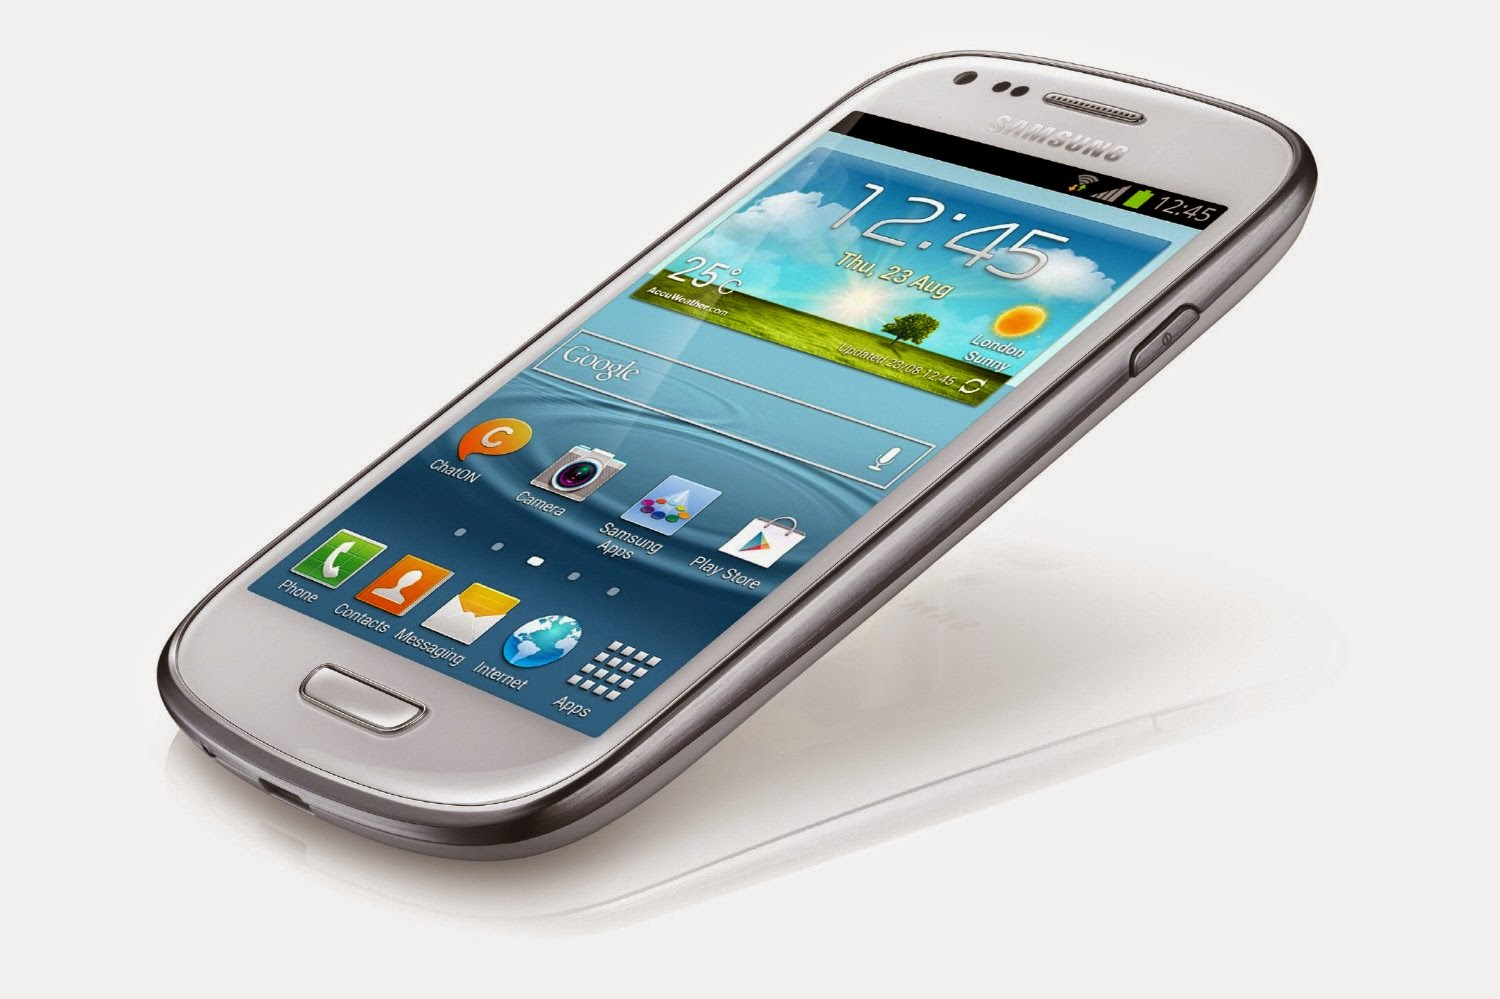 Samsung Galaxy SIII Mini UK SIM-Free Smartphone - White